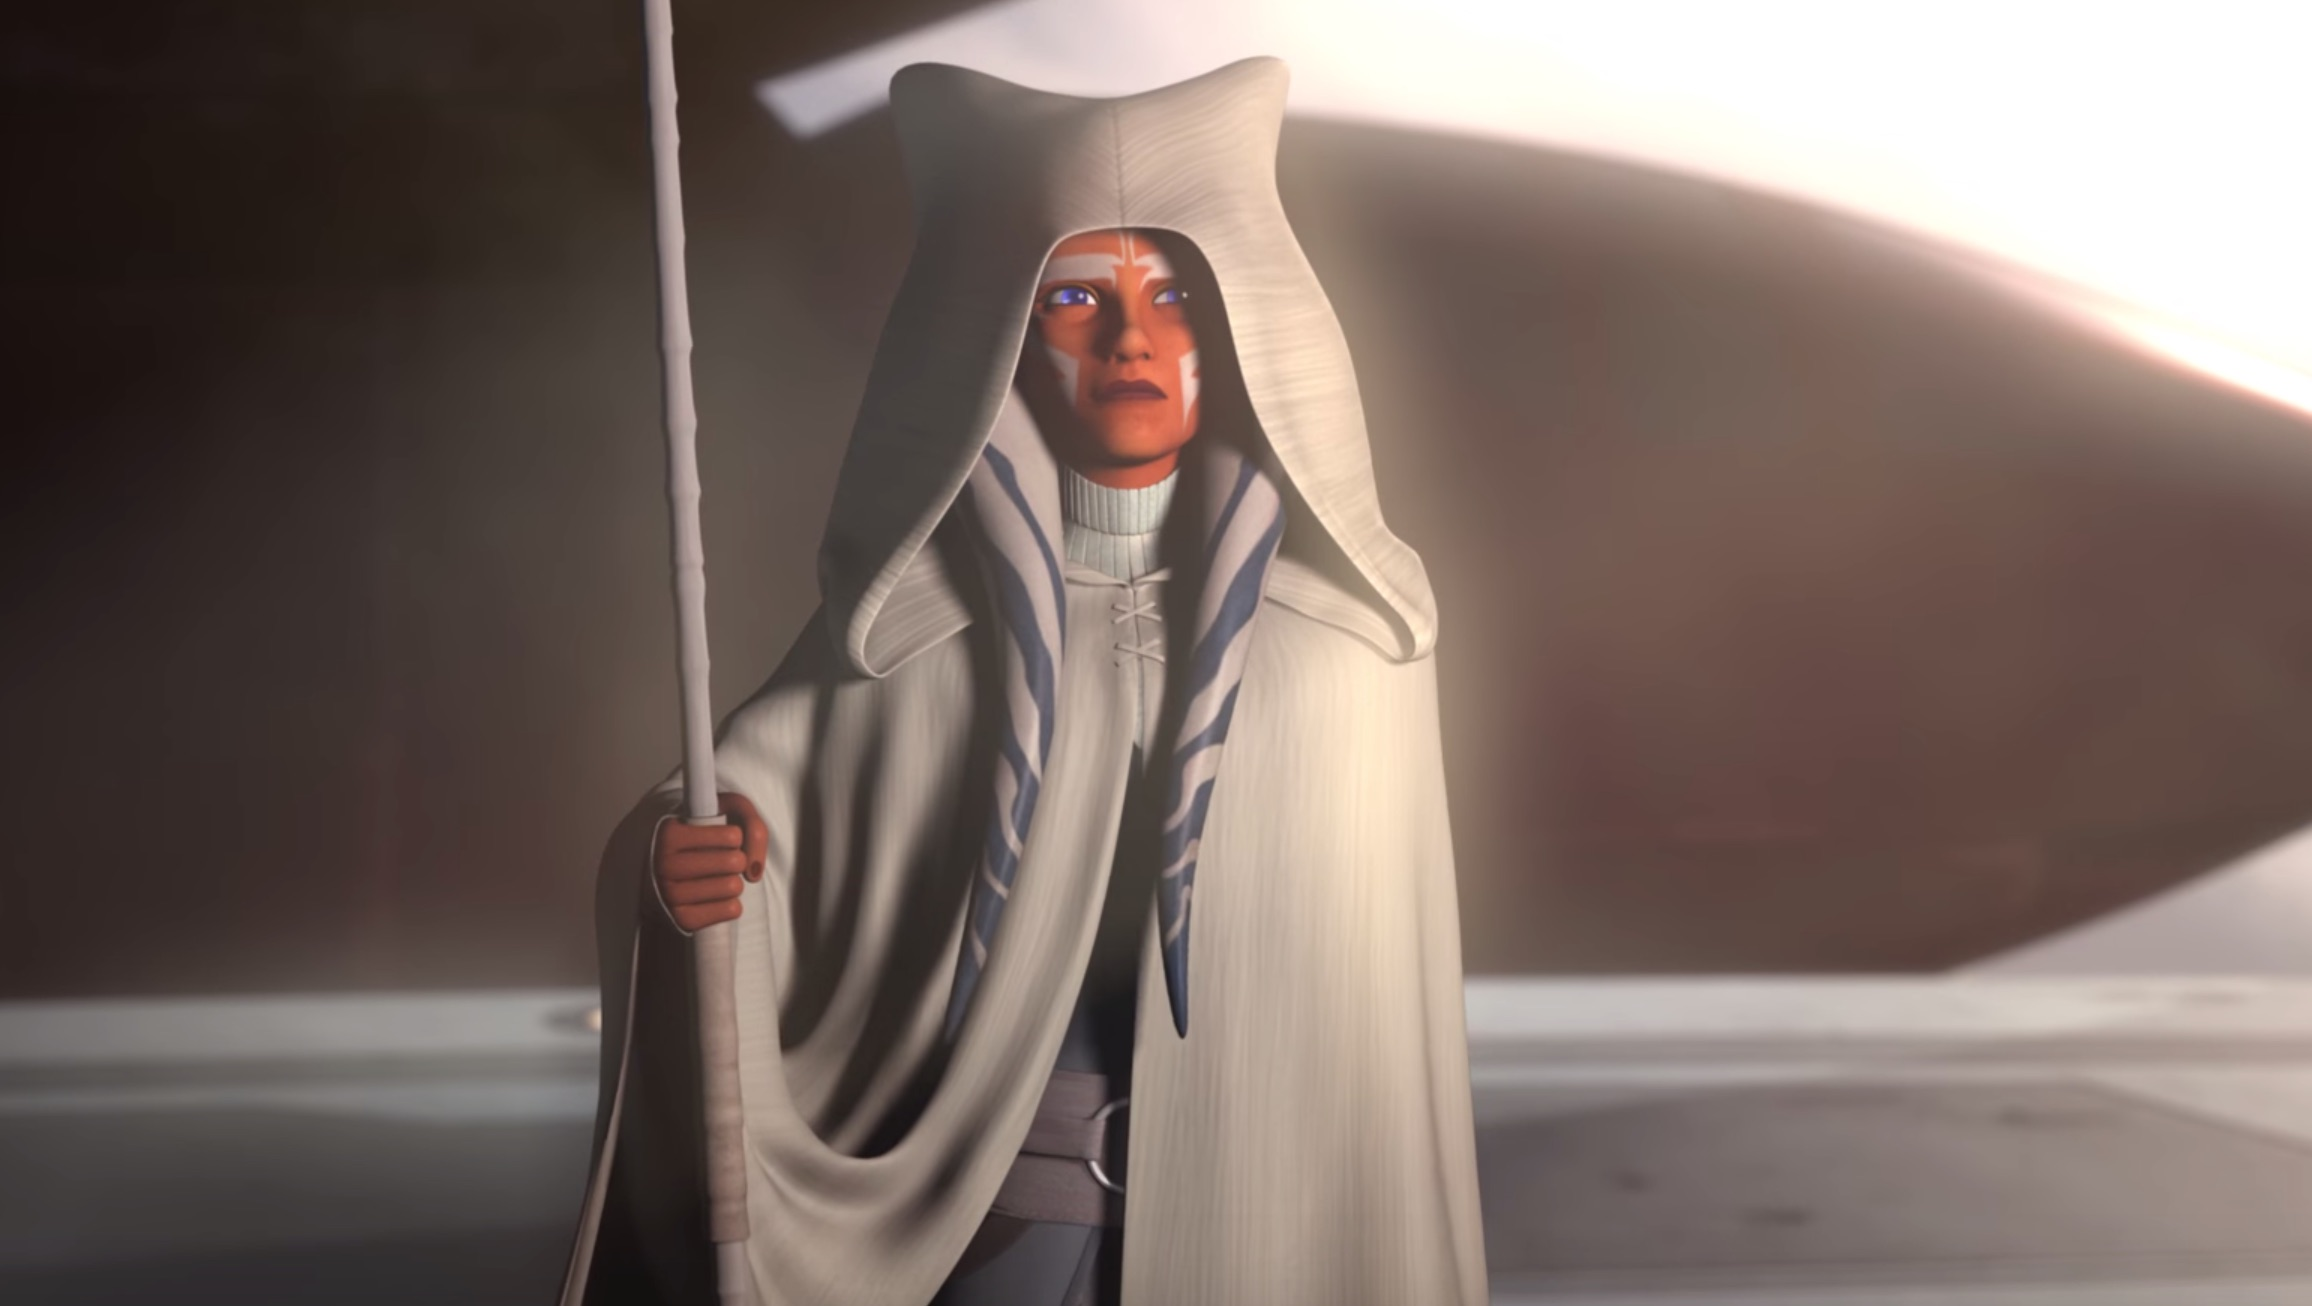 Ahsoka Tano stands with her white robe and staff in the Epilogue of 'Star Wars Rebels.'